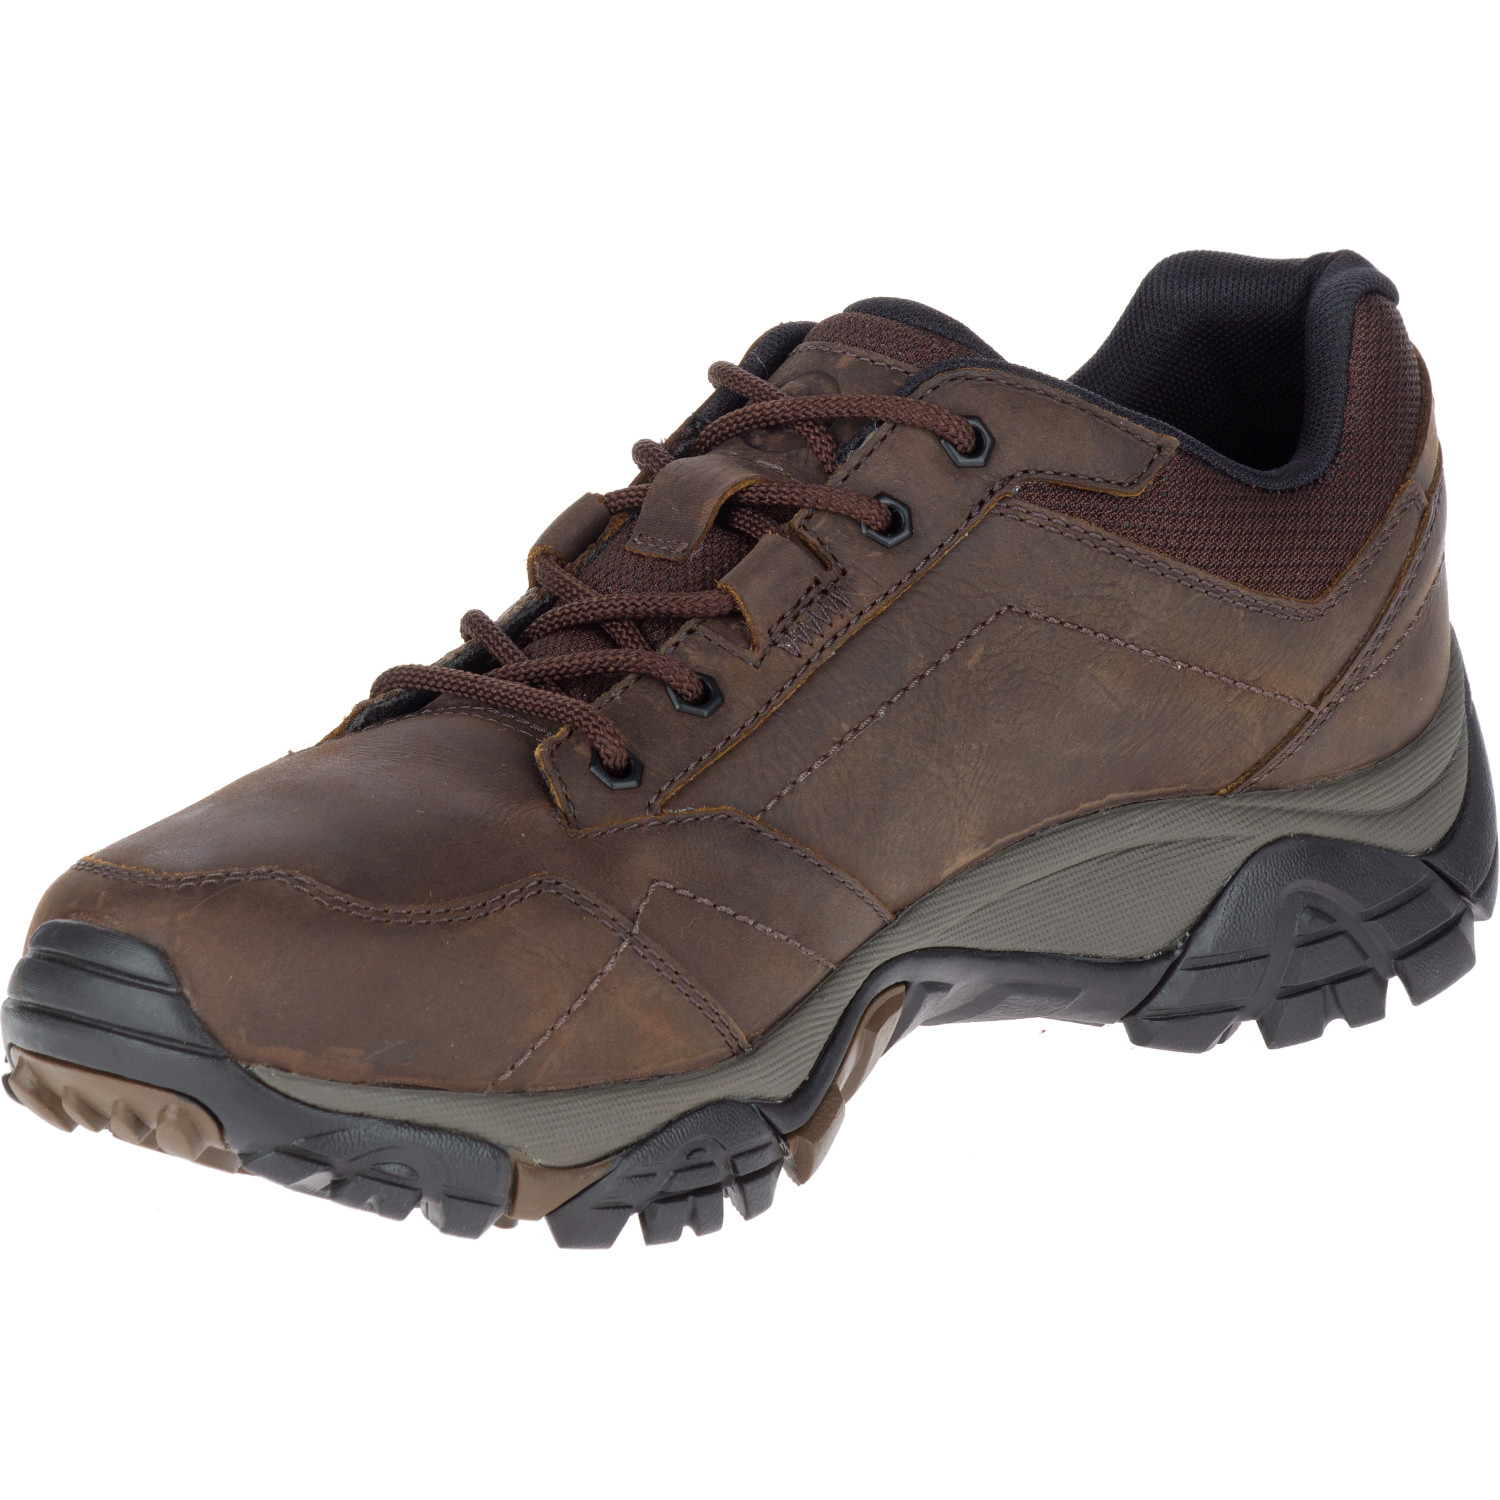 Merrell Moab Adventure Lace WTPF Shoes